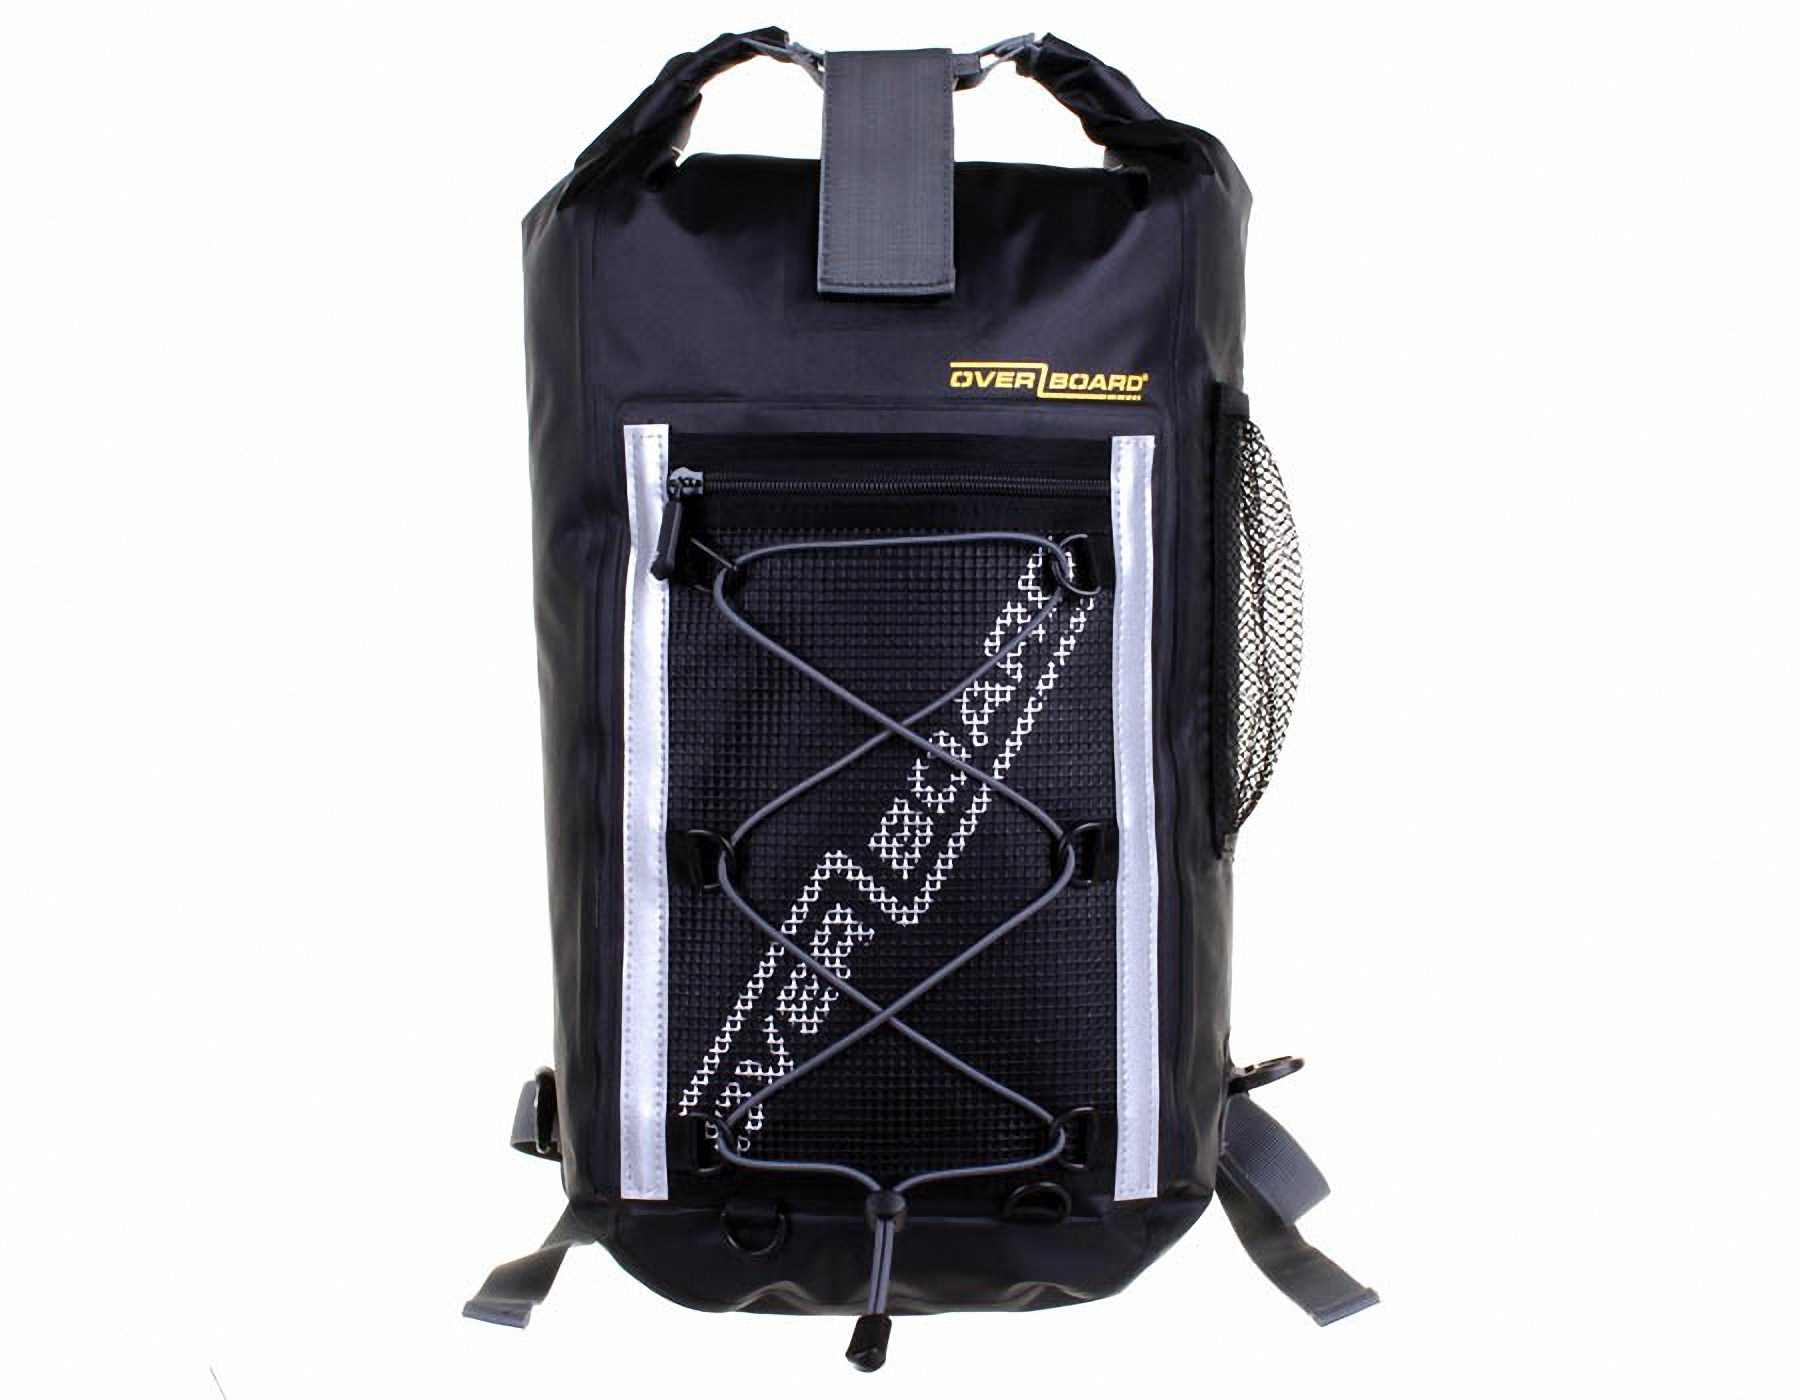 Водонепроницаемый рюкзак OverBoard OB1135BLK - Ultra-light Pro-Sports Waterproof Backpack - 20L. Фото 1